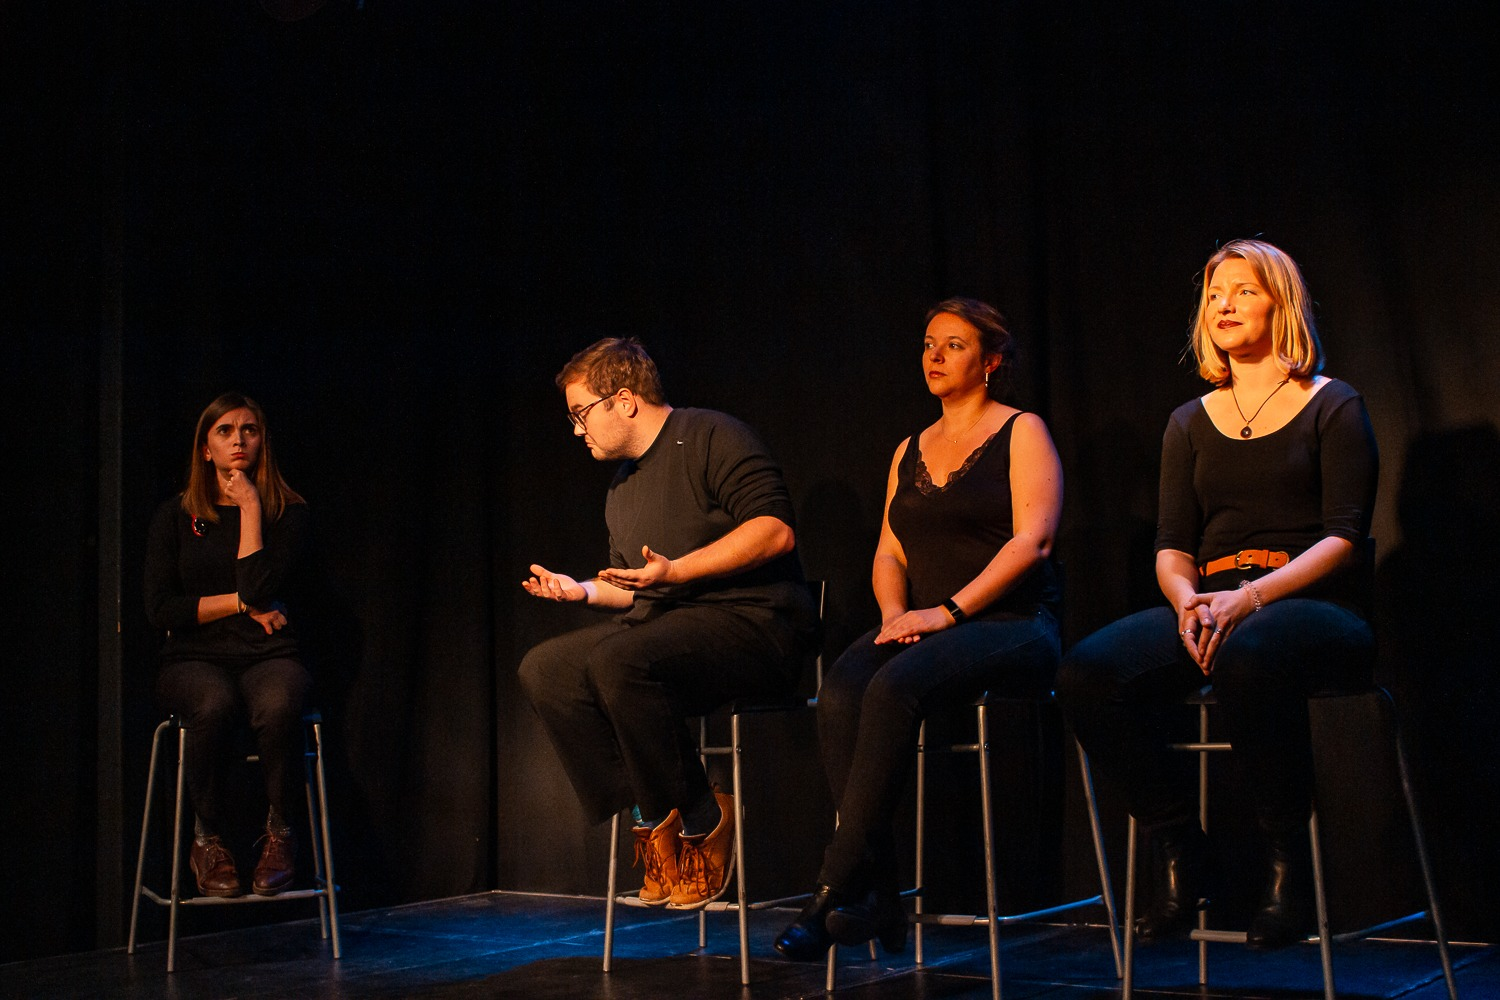 Act Attack's improv and physical show. A group of people on stage wearing black, sitting on bar stools. Three women and a man making a gesture like he's wondering